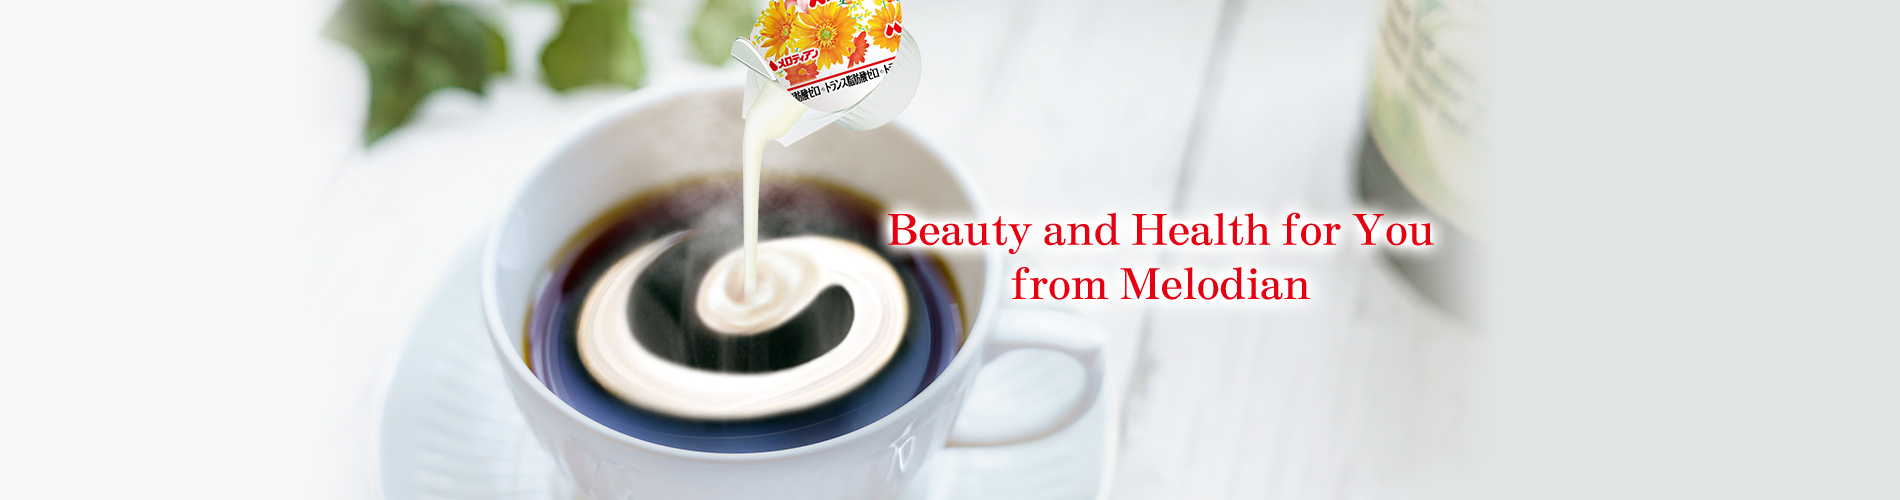 Beauty and Health for You  from Melodian